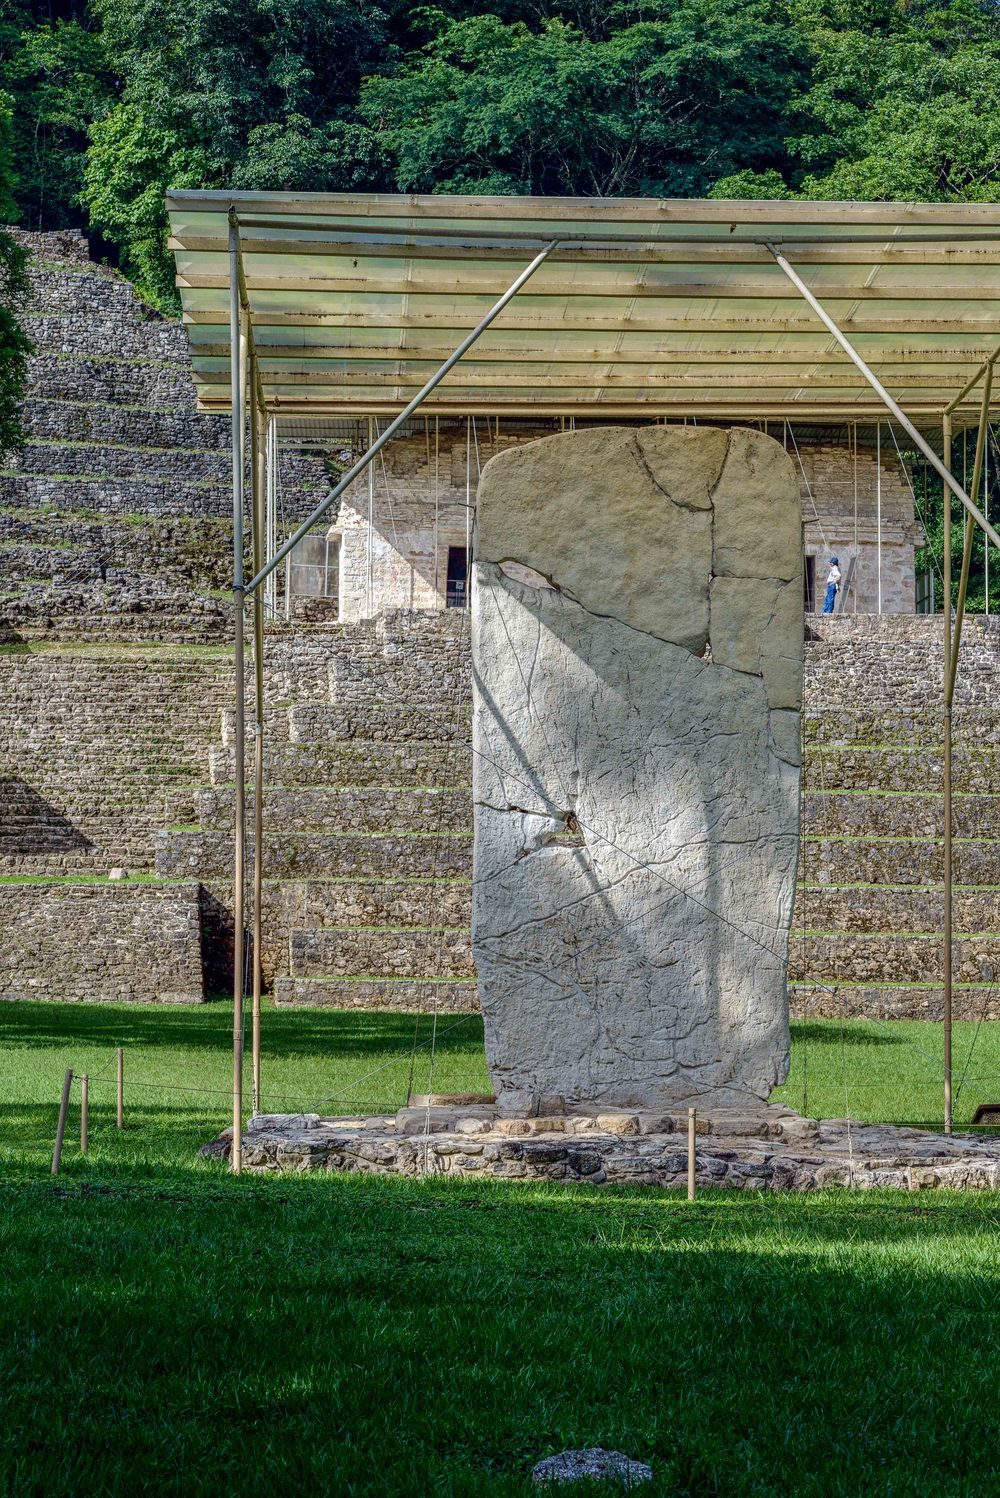 In the center of the Great Plaza is stele No. 1 being the archaeological site's most important one.